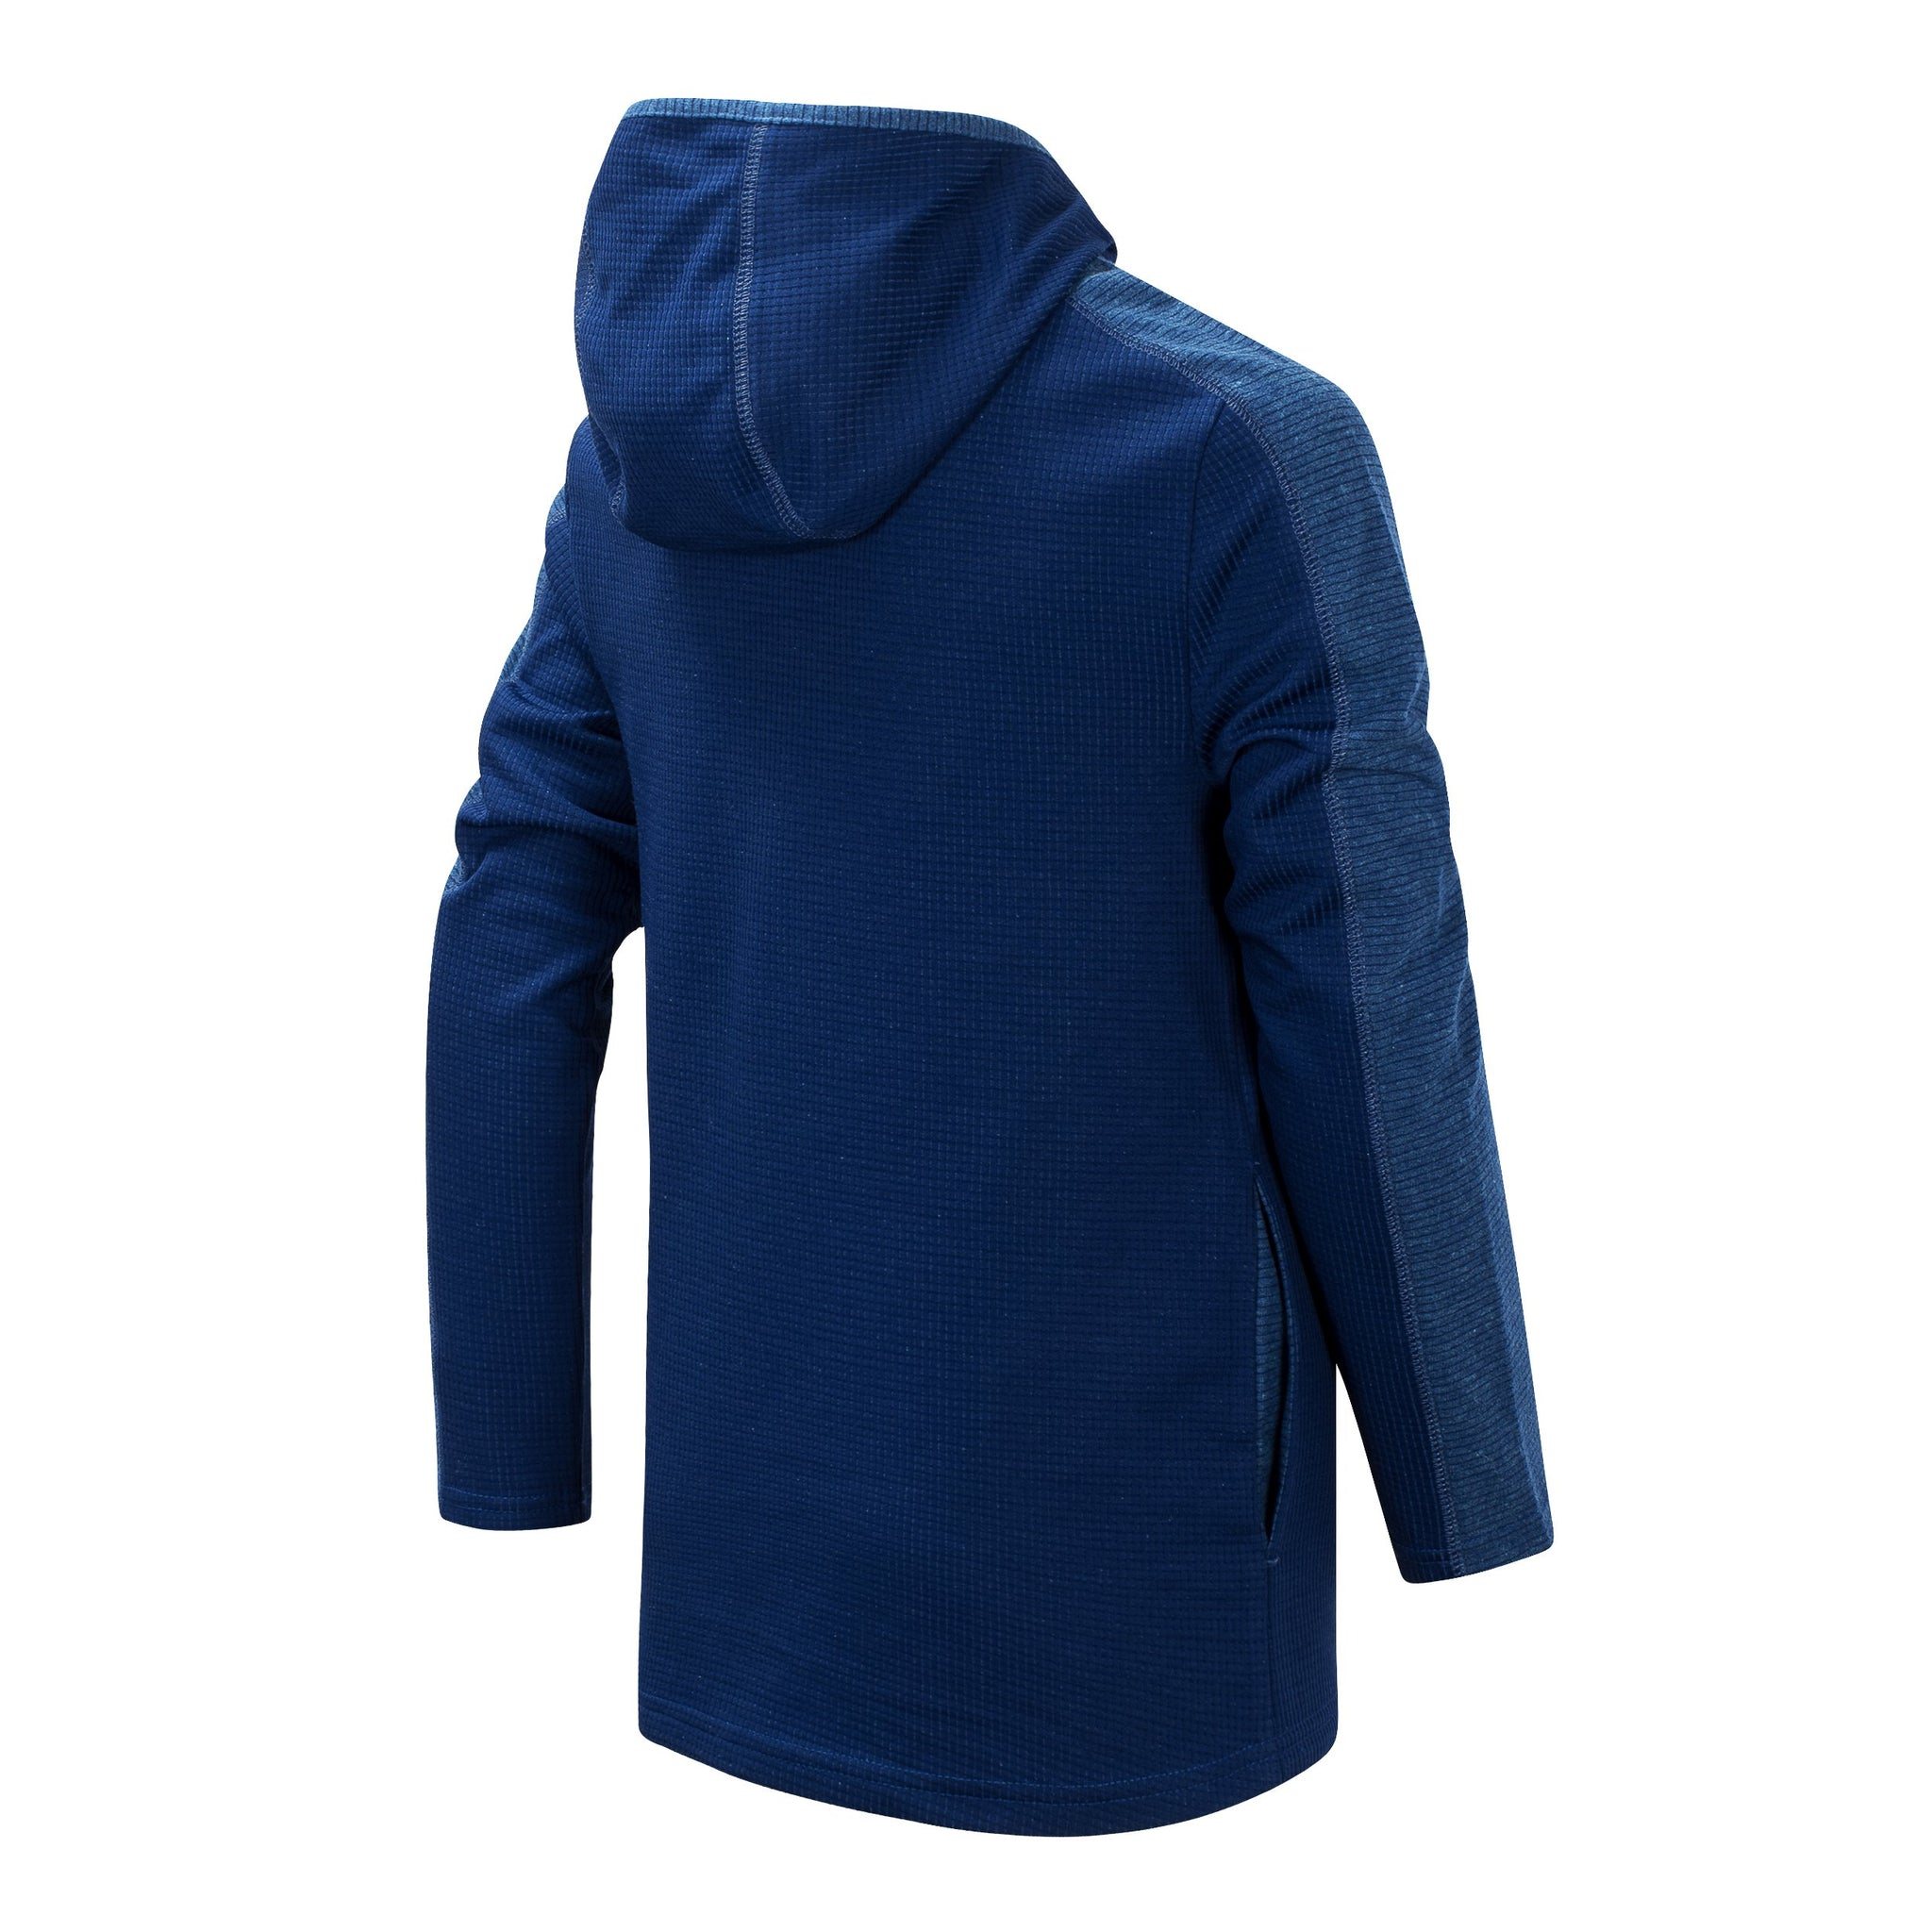 Boys' Techtonic and Lynx Blue Hooded Pullover-Gerber Childrenswear